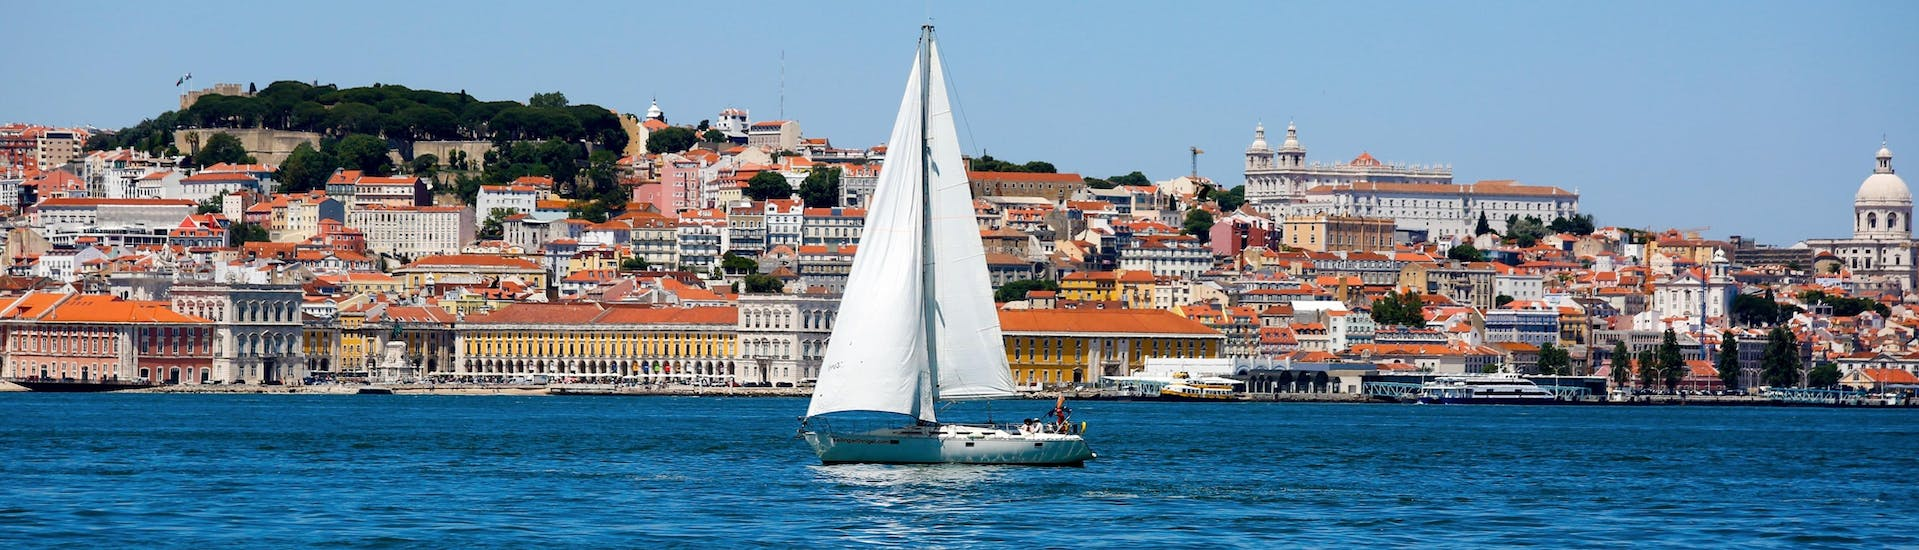 An image of a sailing boat drifting along the Tagus River during a boat trip in Lisbon.